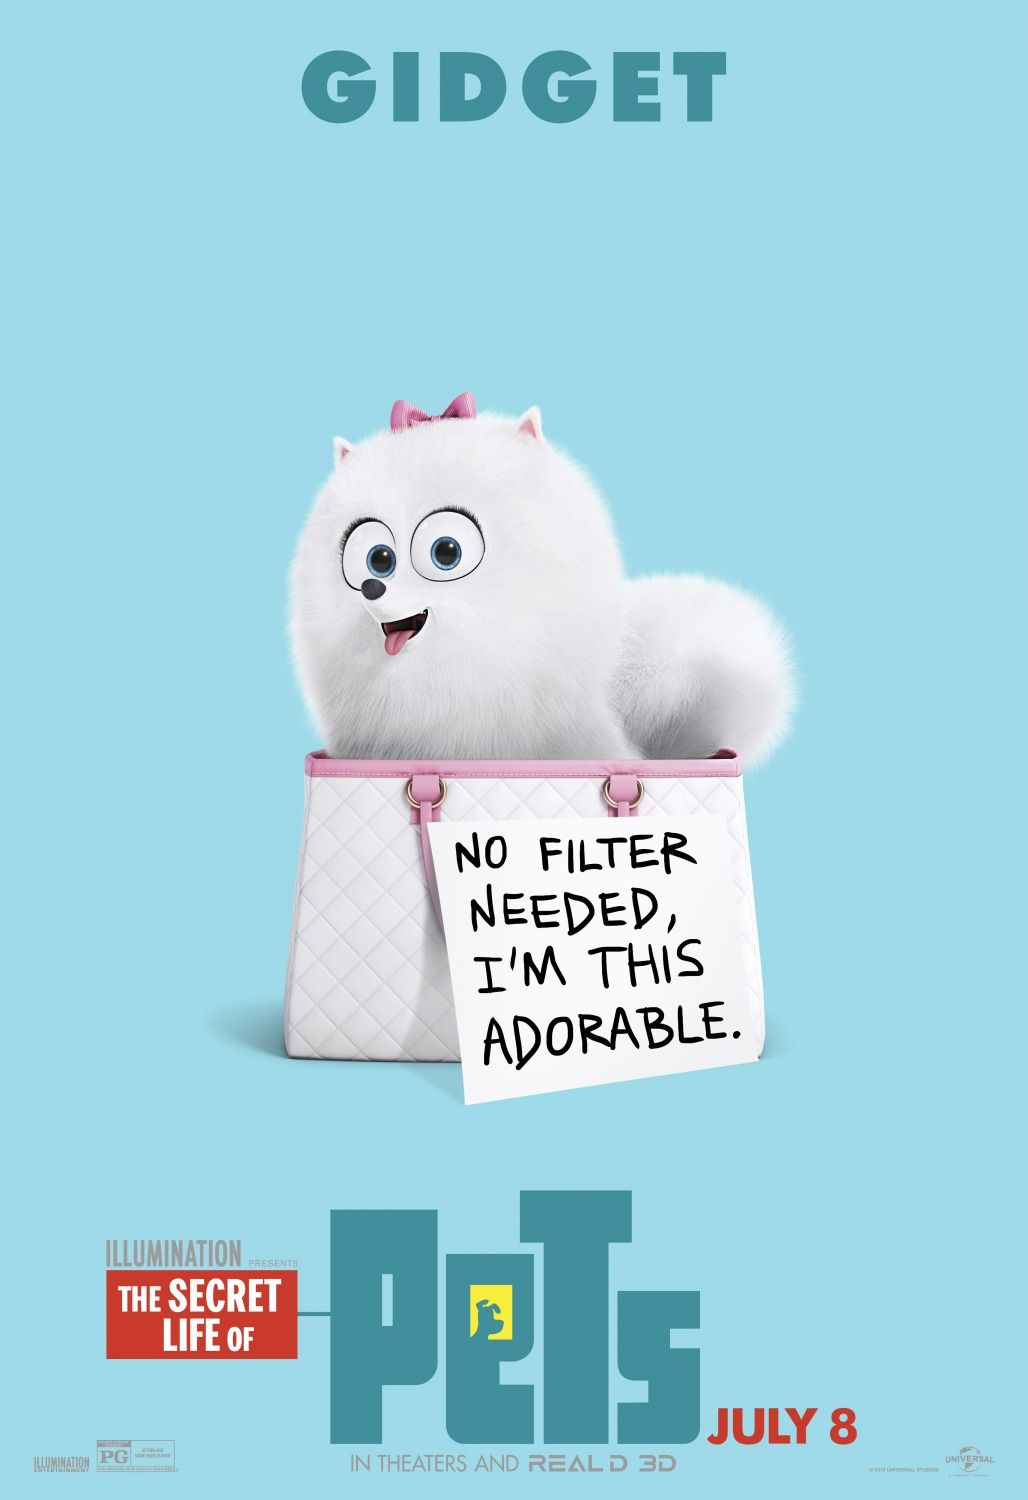 The Secret Life Of Pets Gidget Secret Life Of Pets Pets Movie Funny Wallpapers